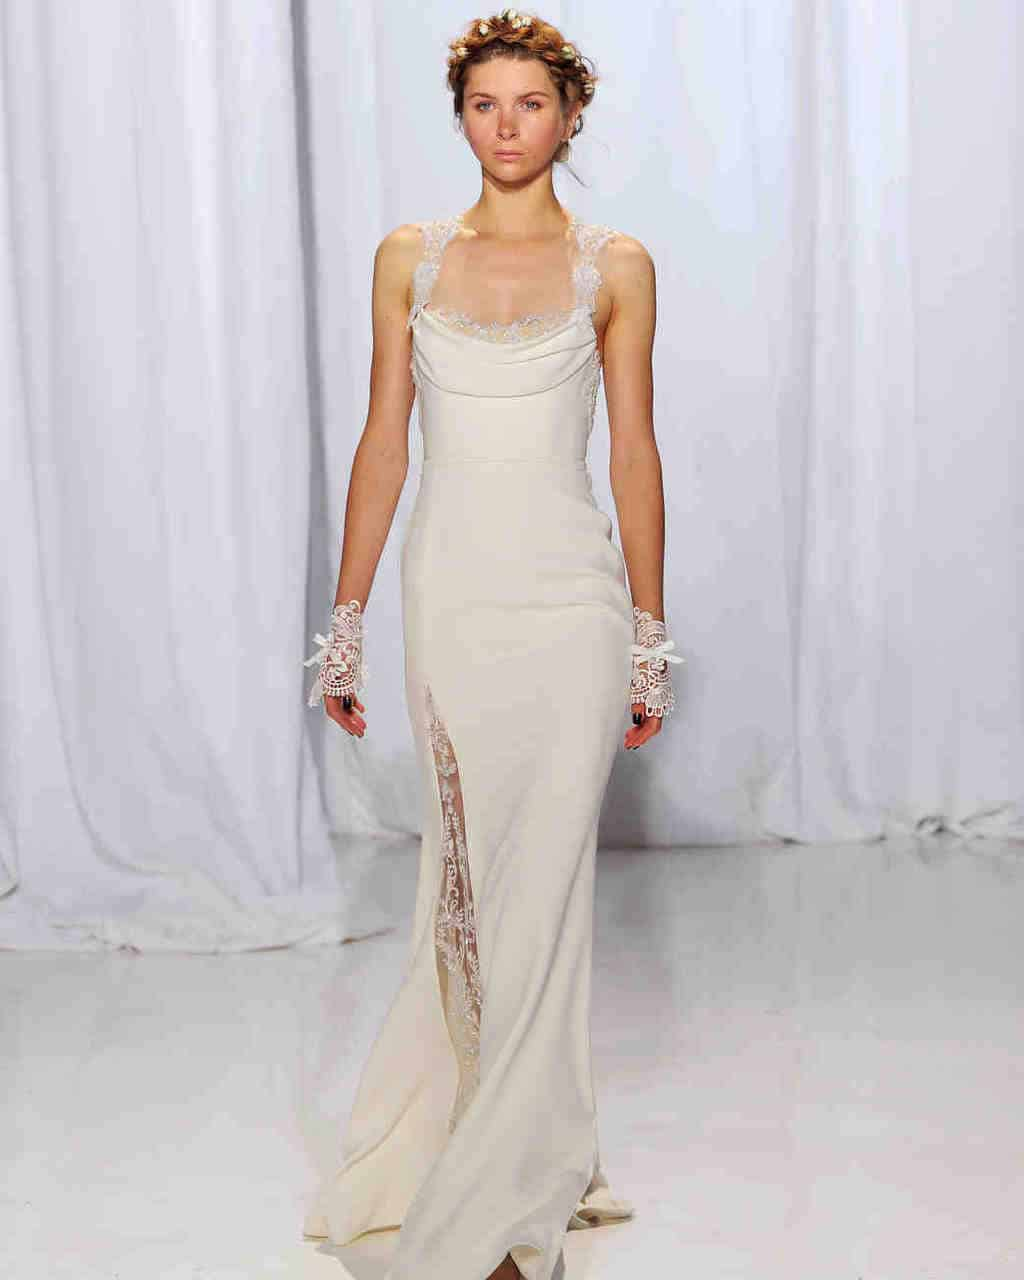 reem-acra-wedding-dress-fall2017-6203351-011_vert